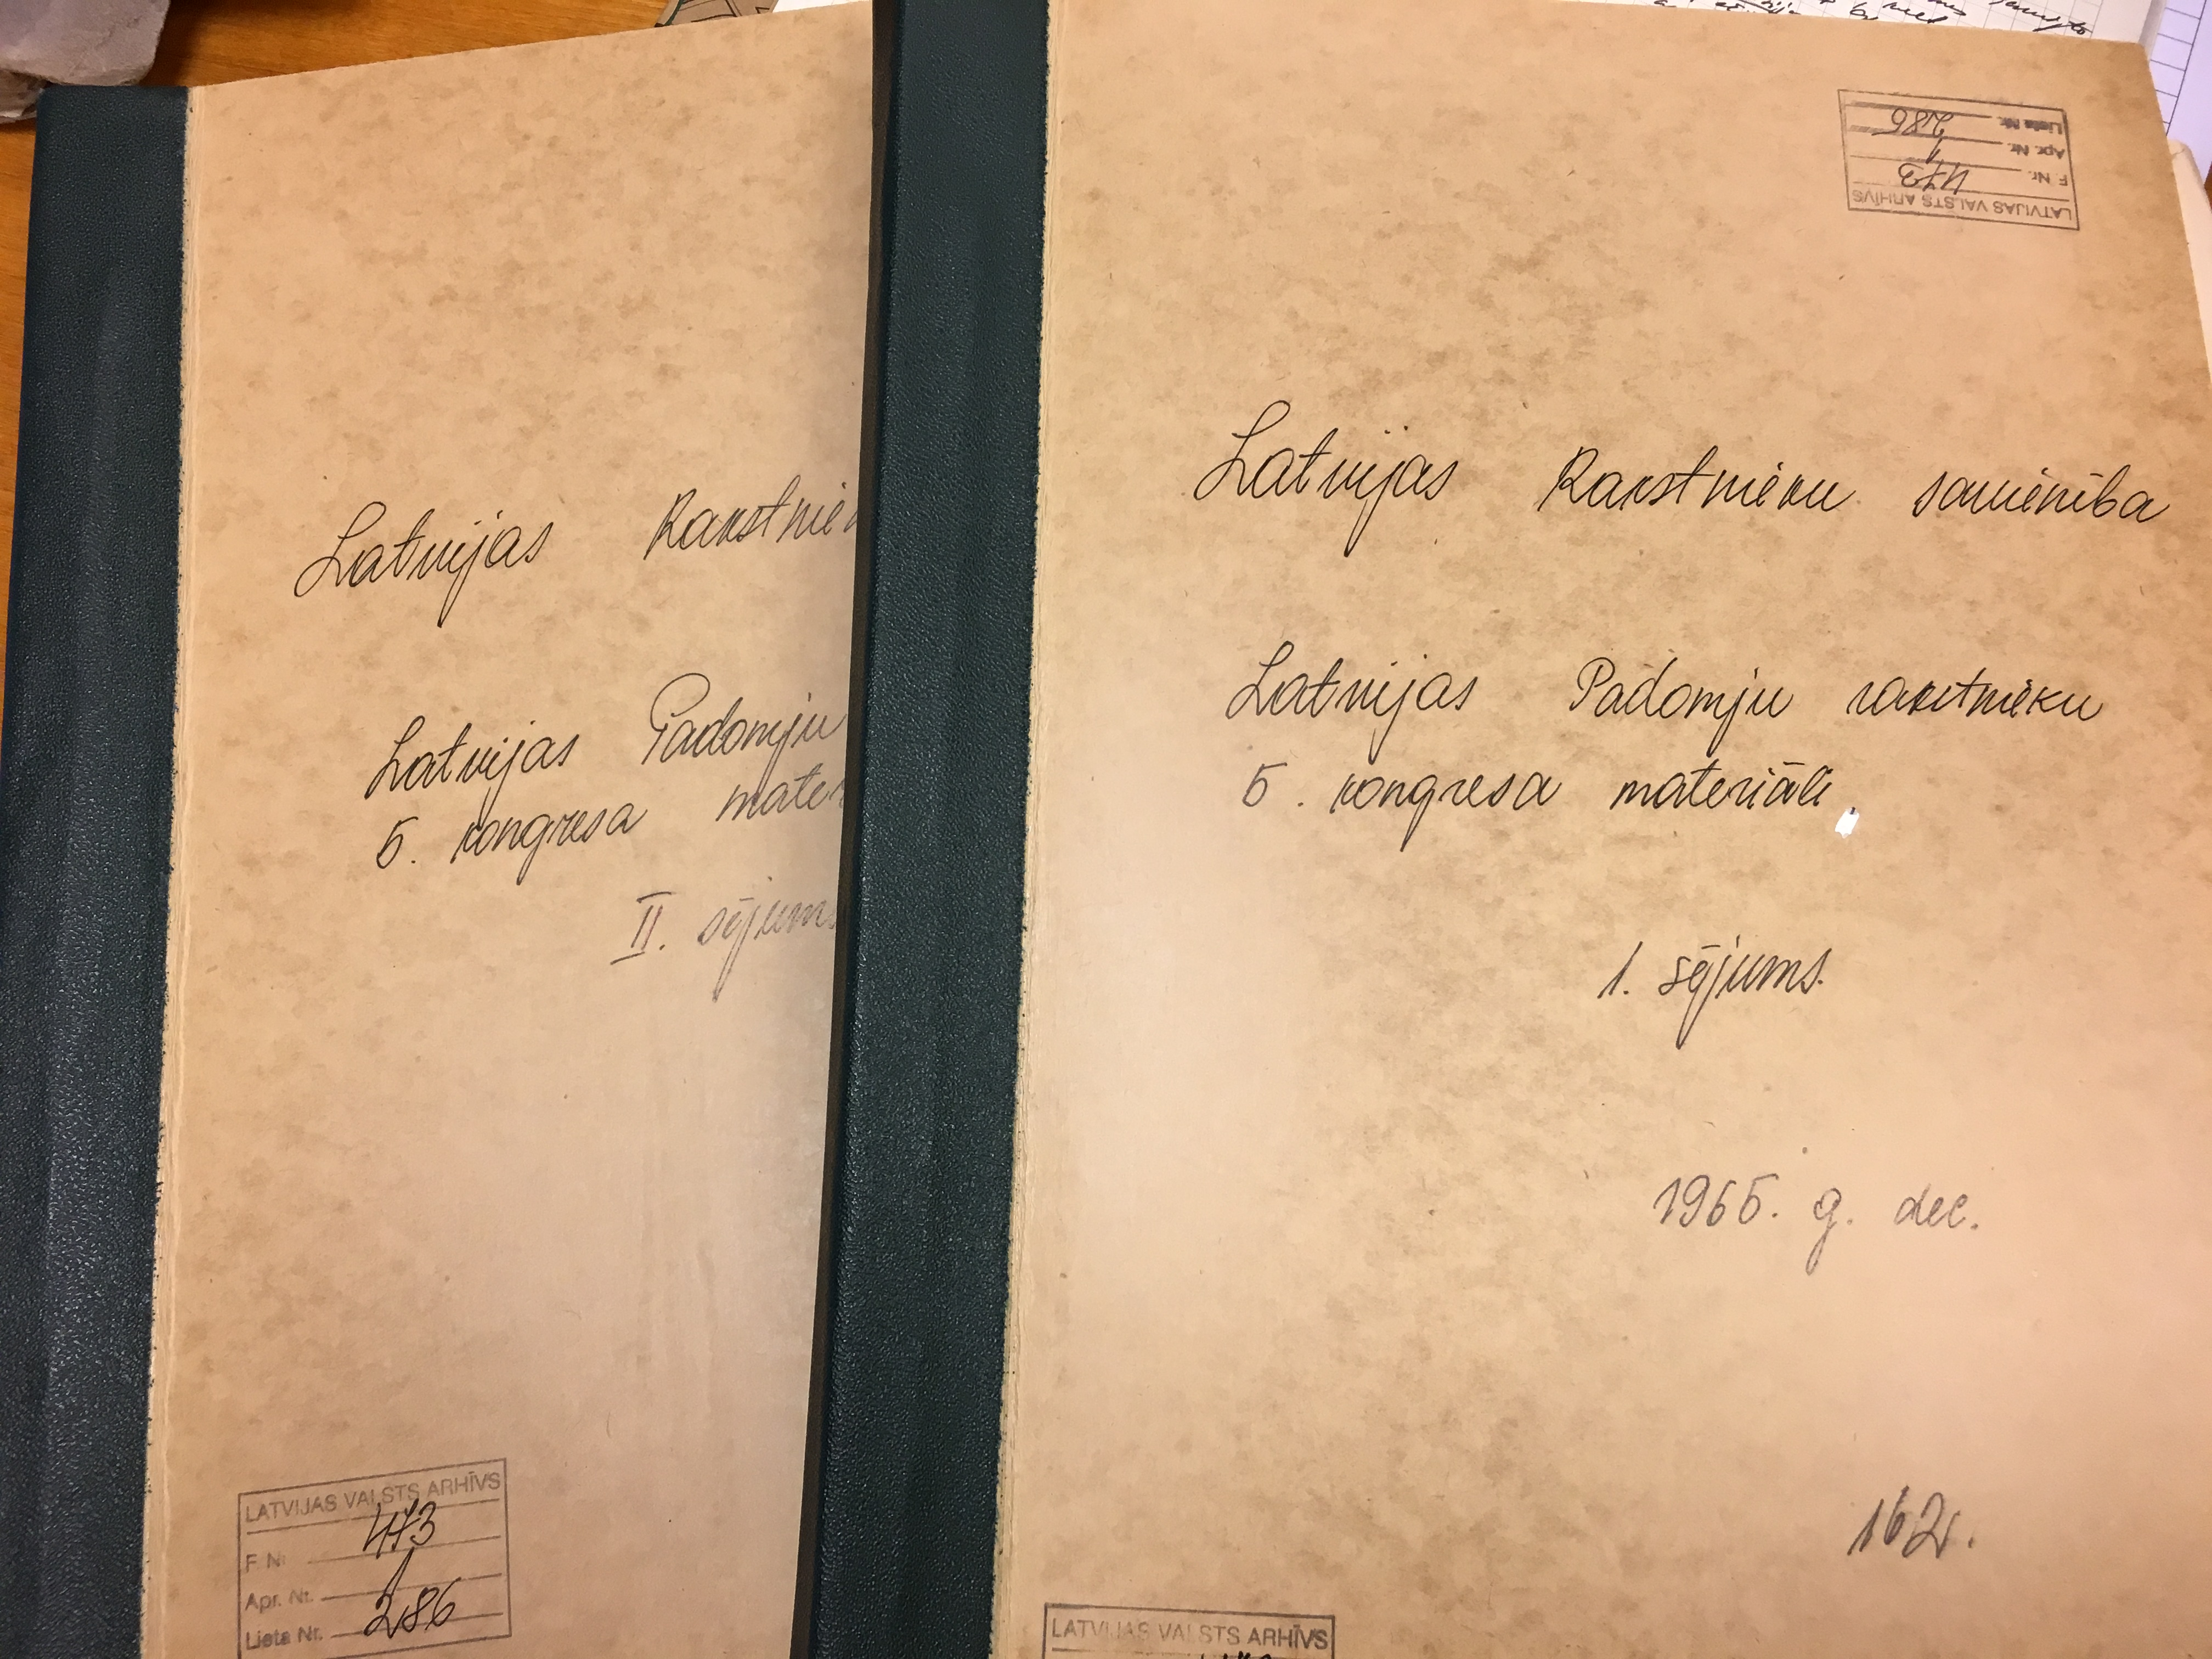 Files of the 5th Congress of the Latvian Soviet Writers' Union in December 1965